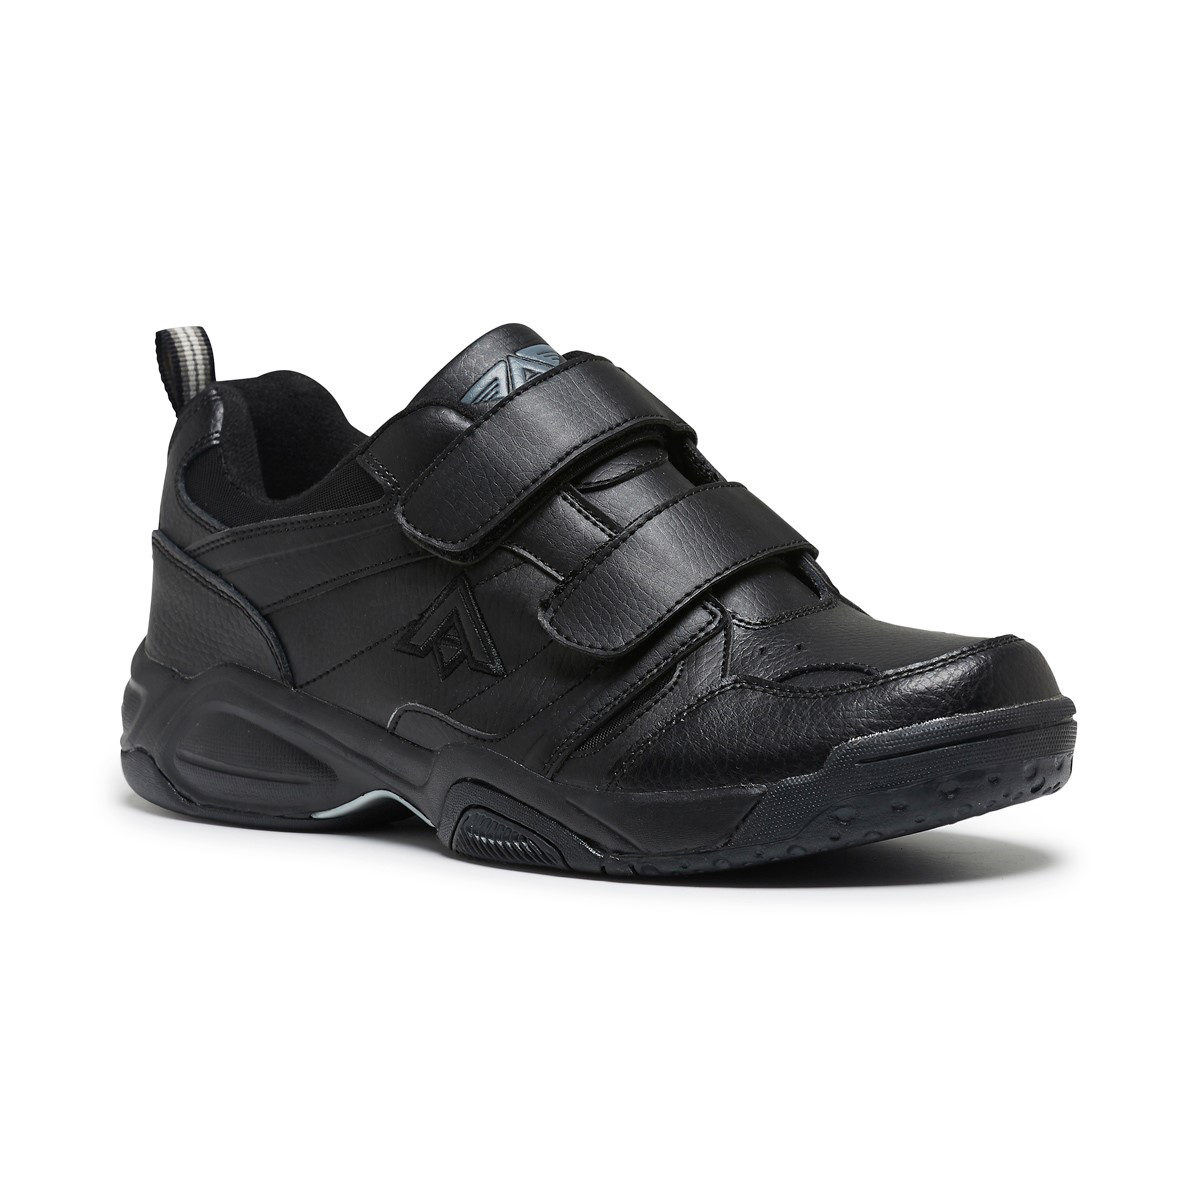 Mens Aerosport Tread Strap Over Black Work Everyday Runners Sneakers New shoes